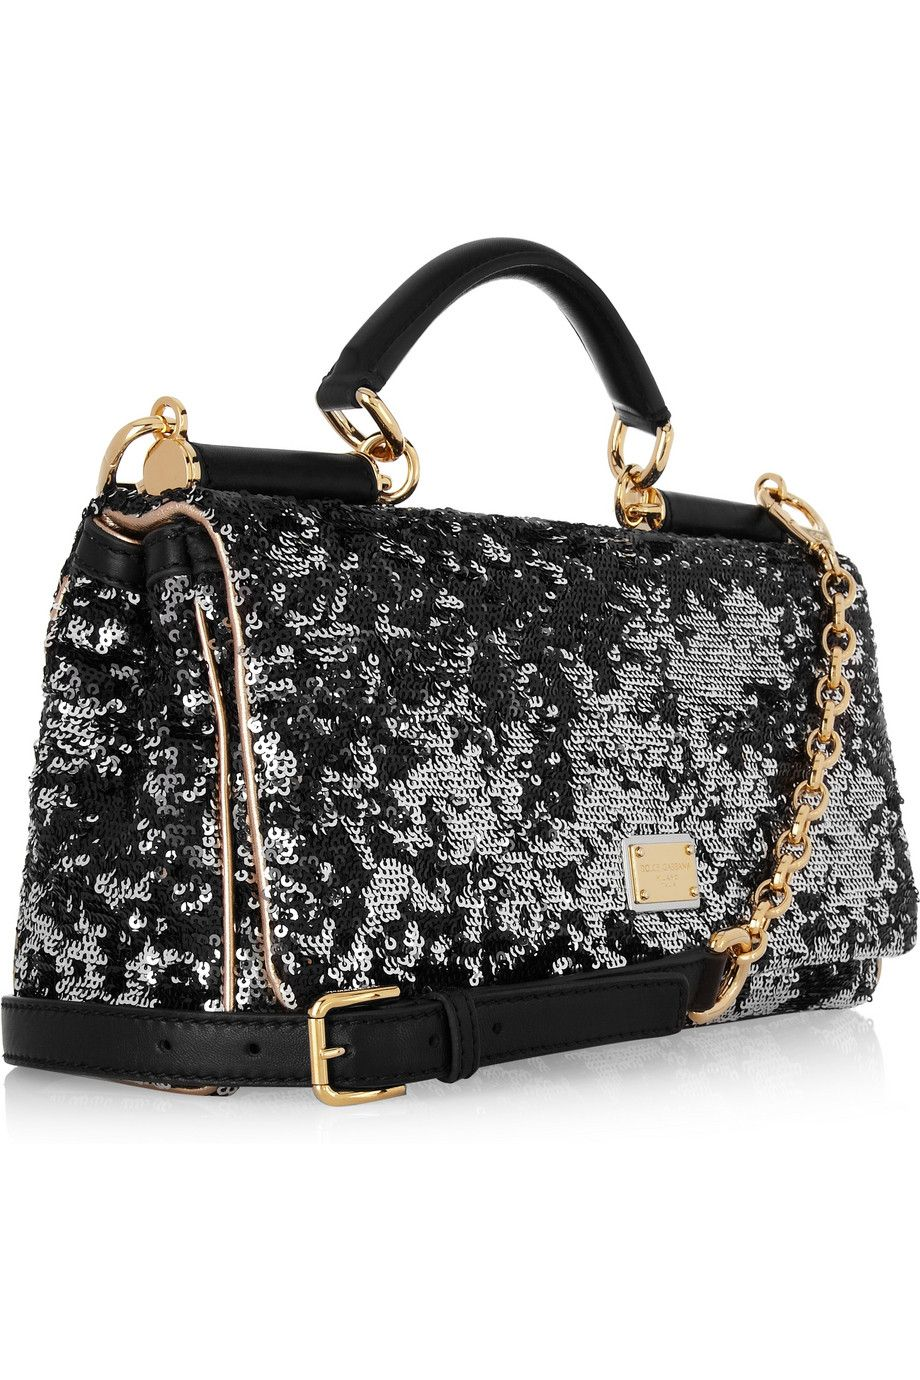 953ec8fd9675  1725 my fav designers DOLCE   GABBANA give me life with this Sequined leather  tote